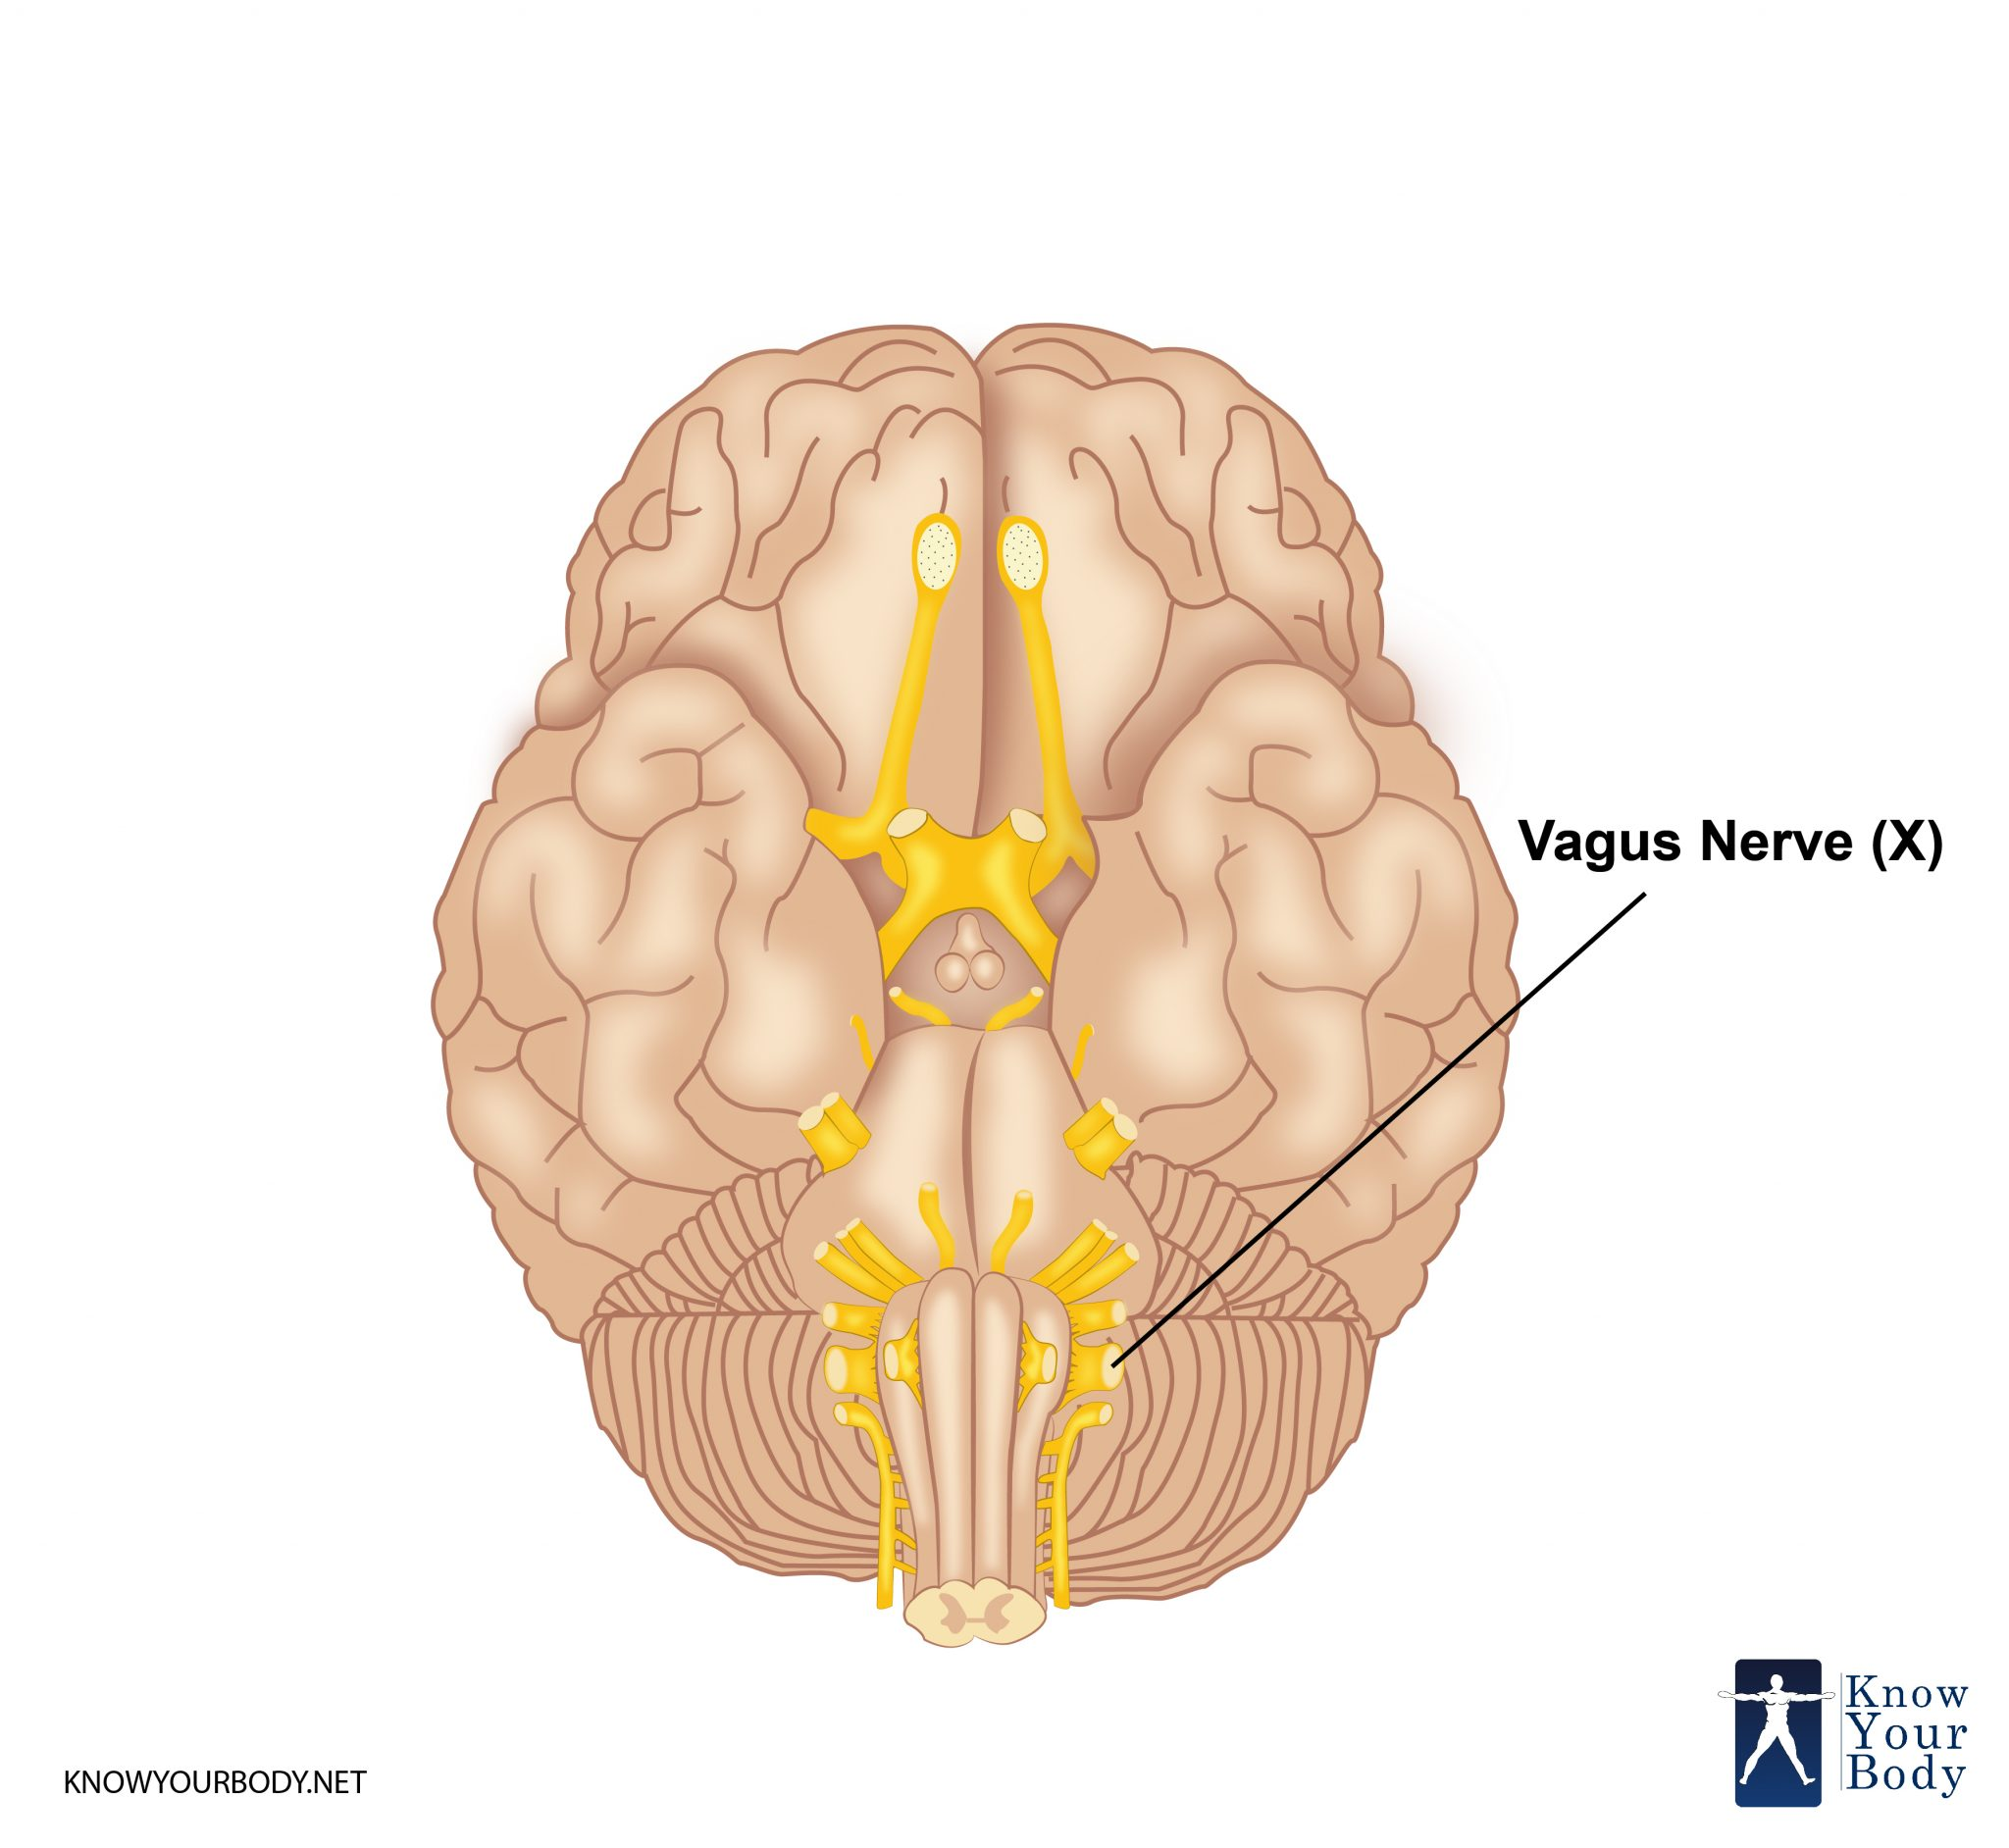 Vagus Nerve - Function, Location, Anatomy and FAQs